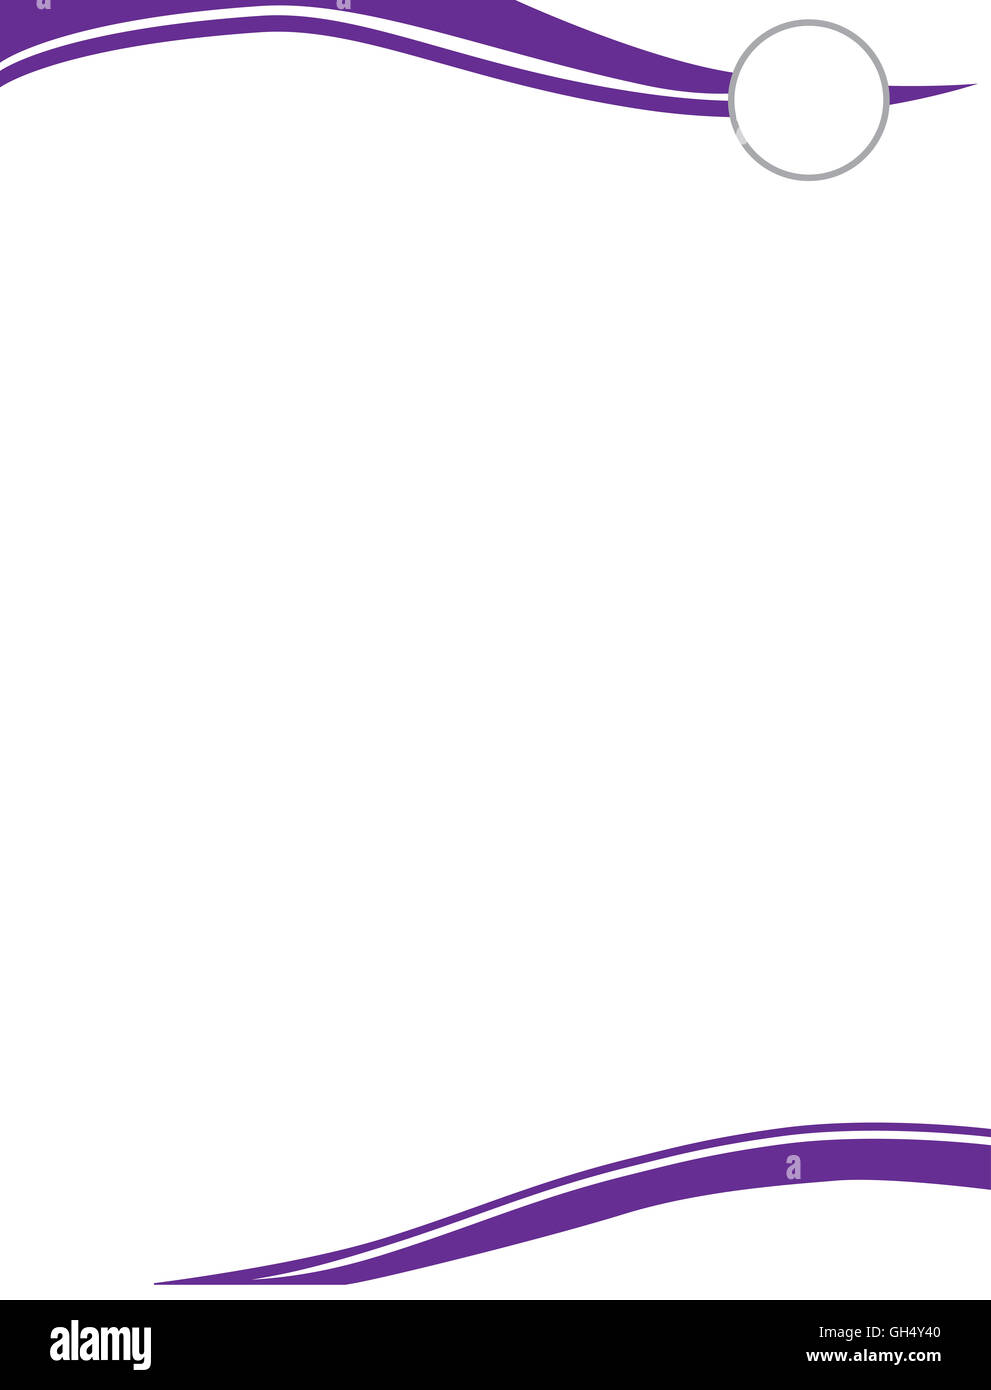 Purple Swirl Letterhead Template with Circle for Logo - Stock Image